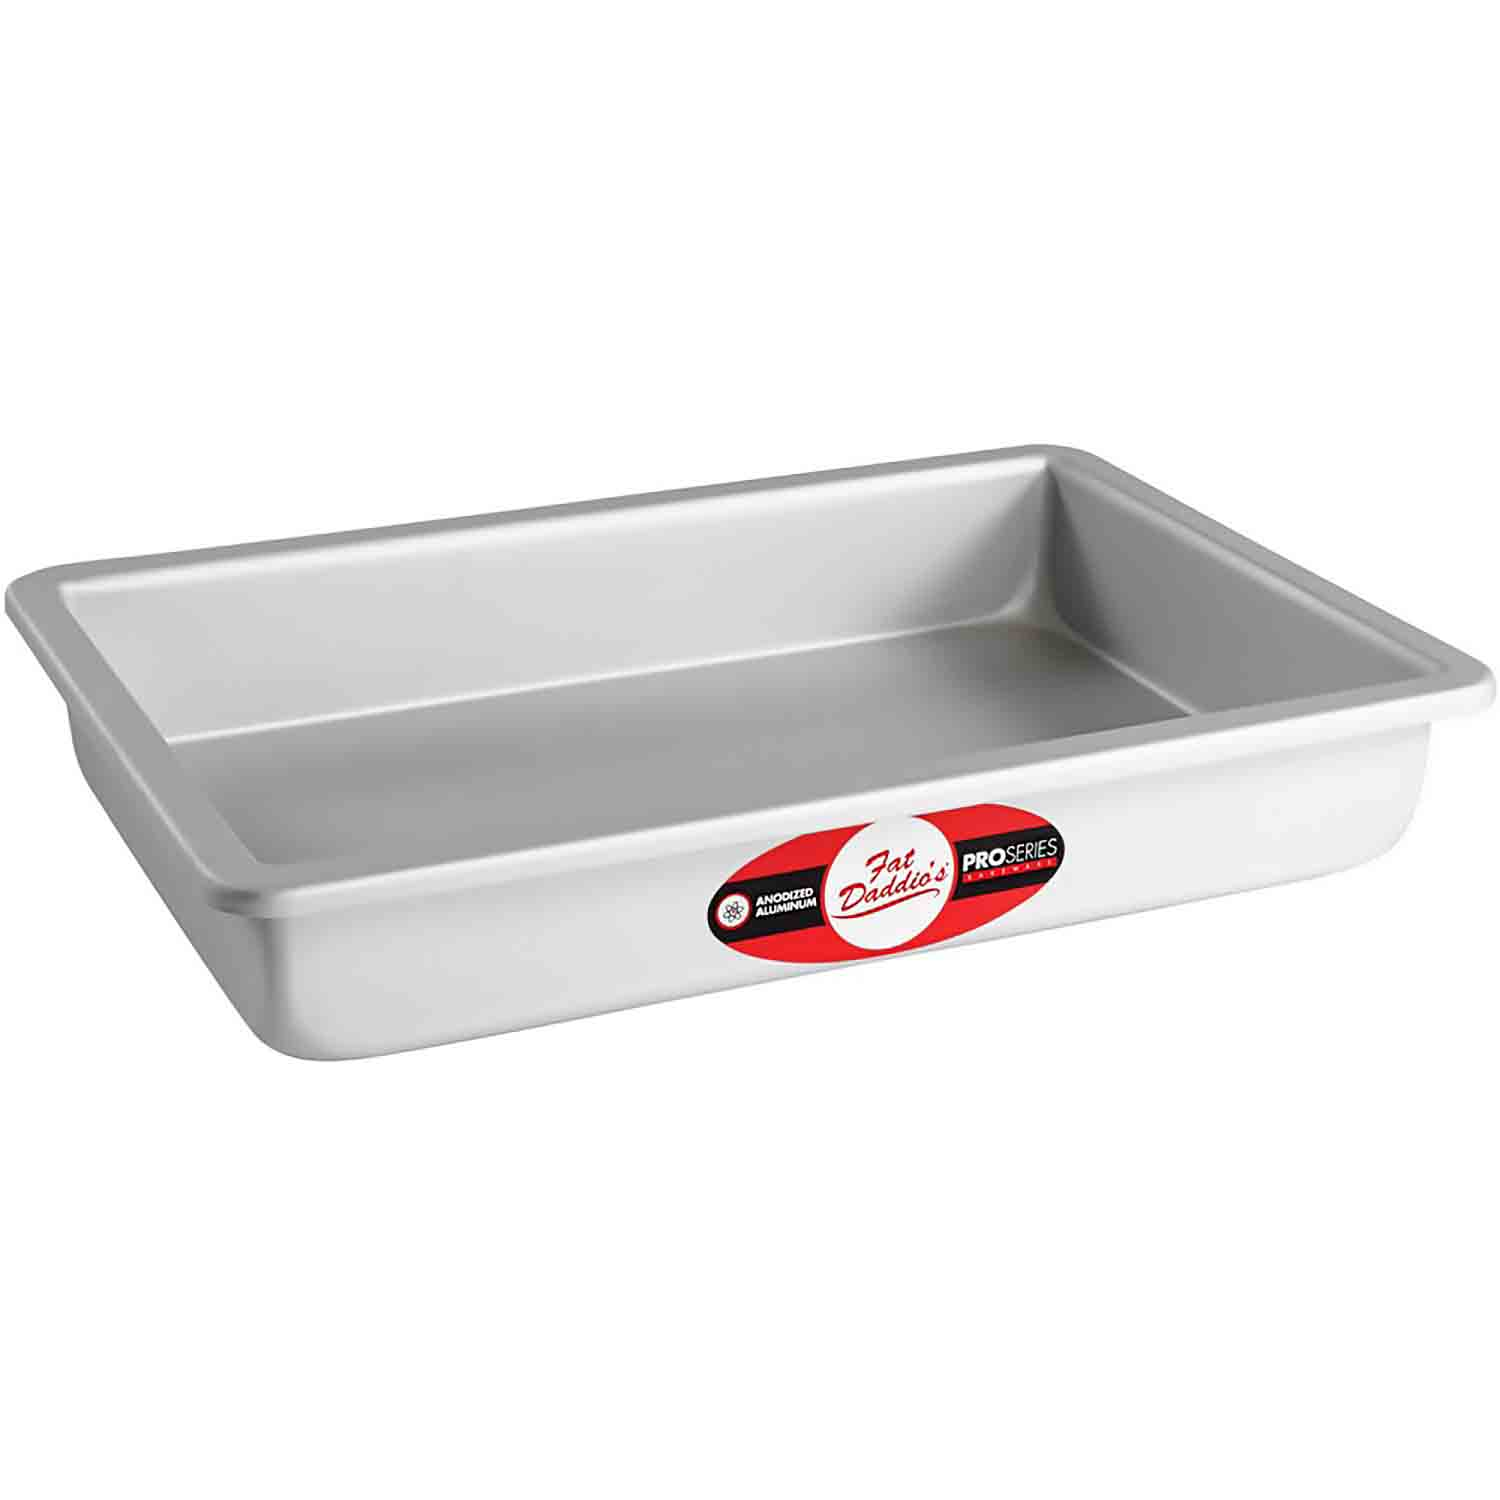 Bakeware for Cakes